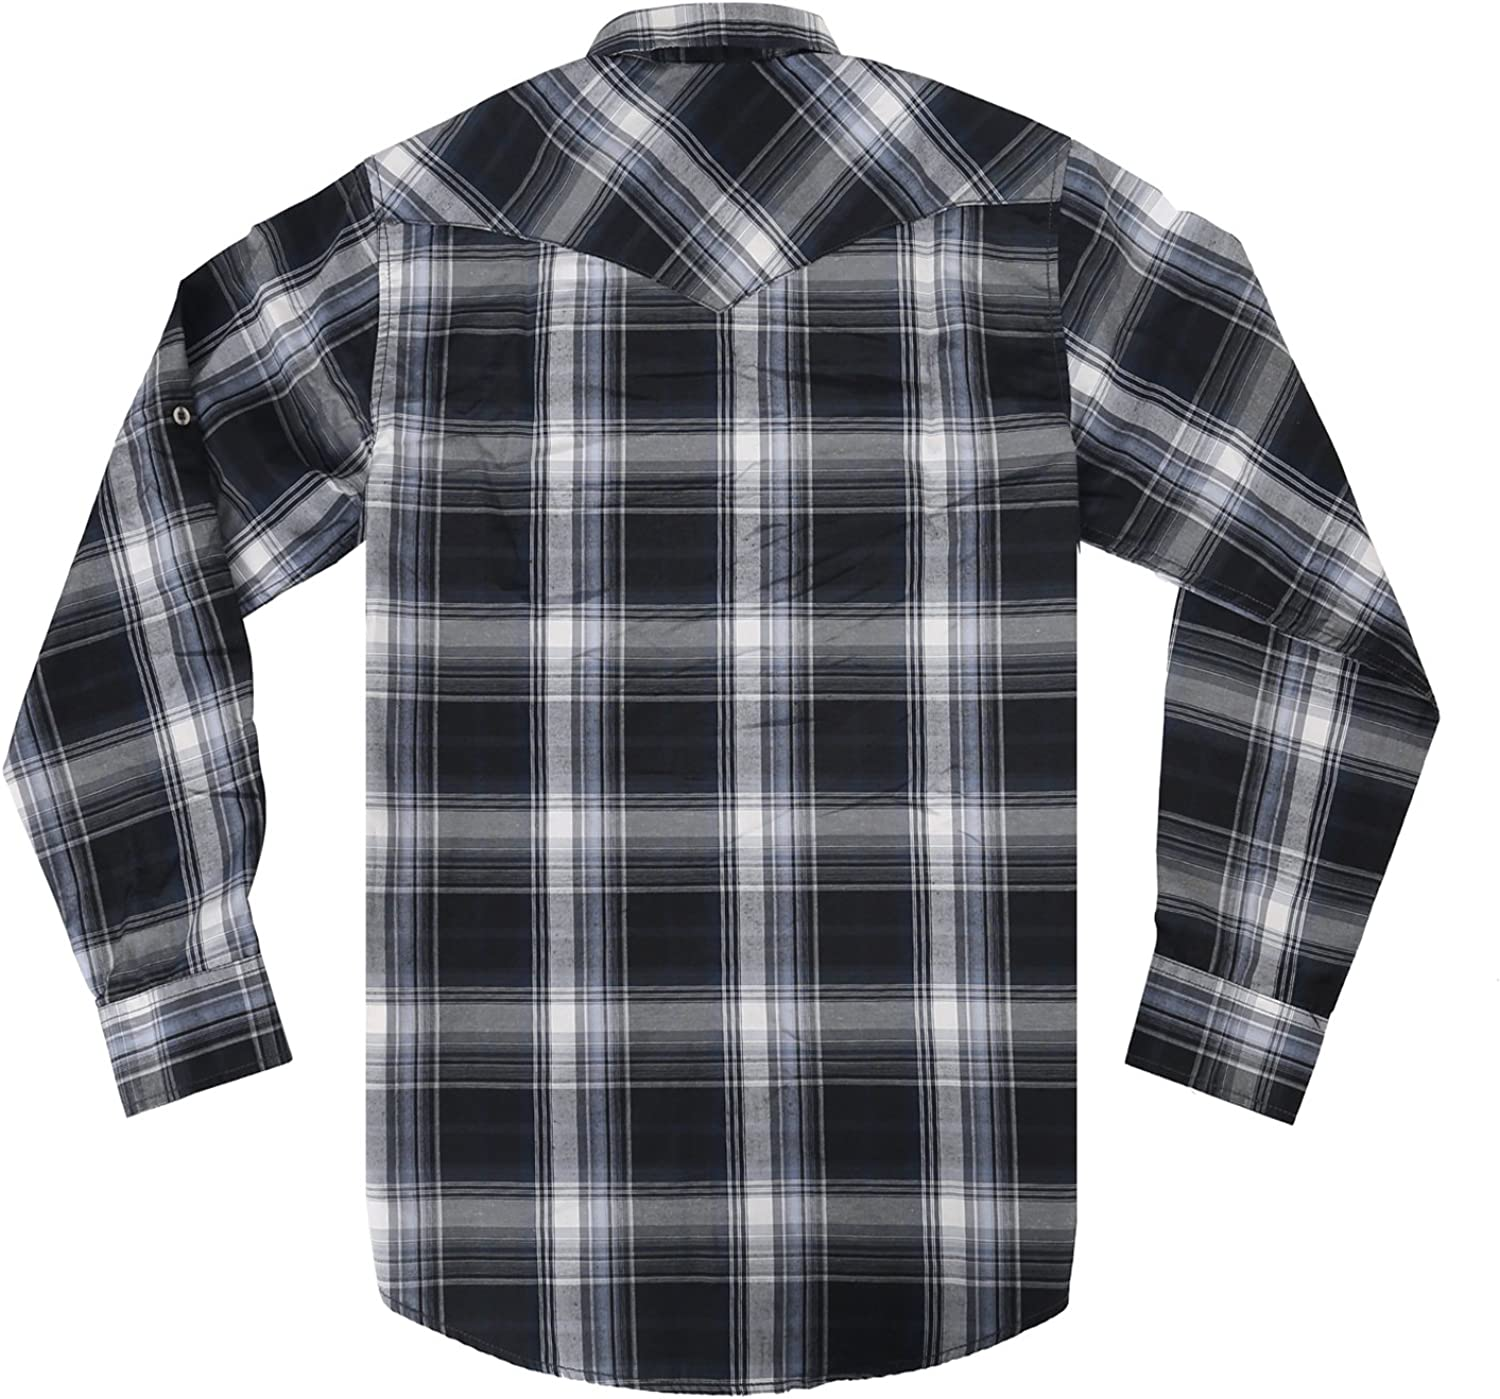 Mens Casual Long Sleeve Plaid Shirt with Pearl Snaps